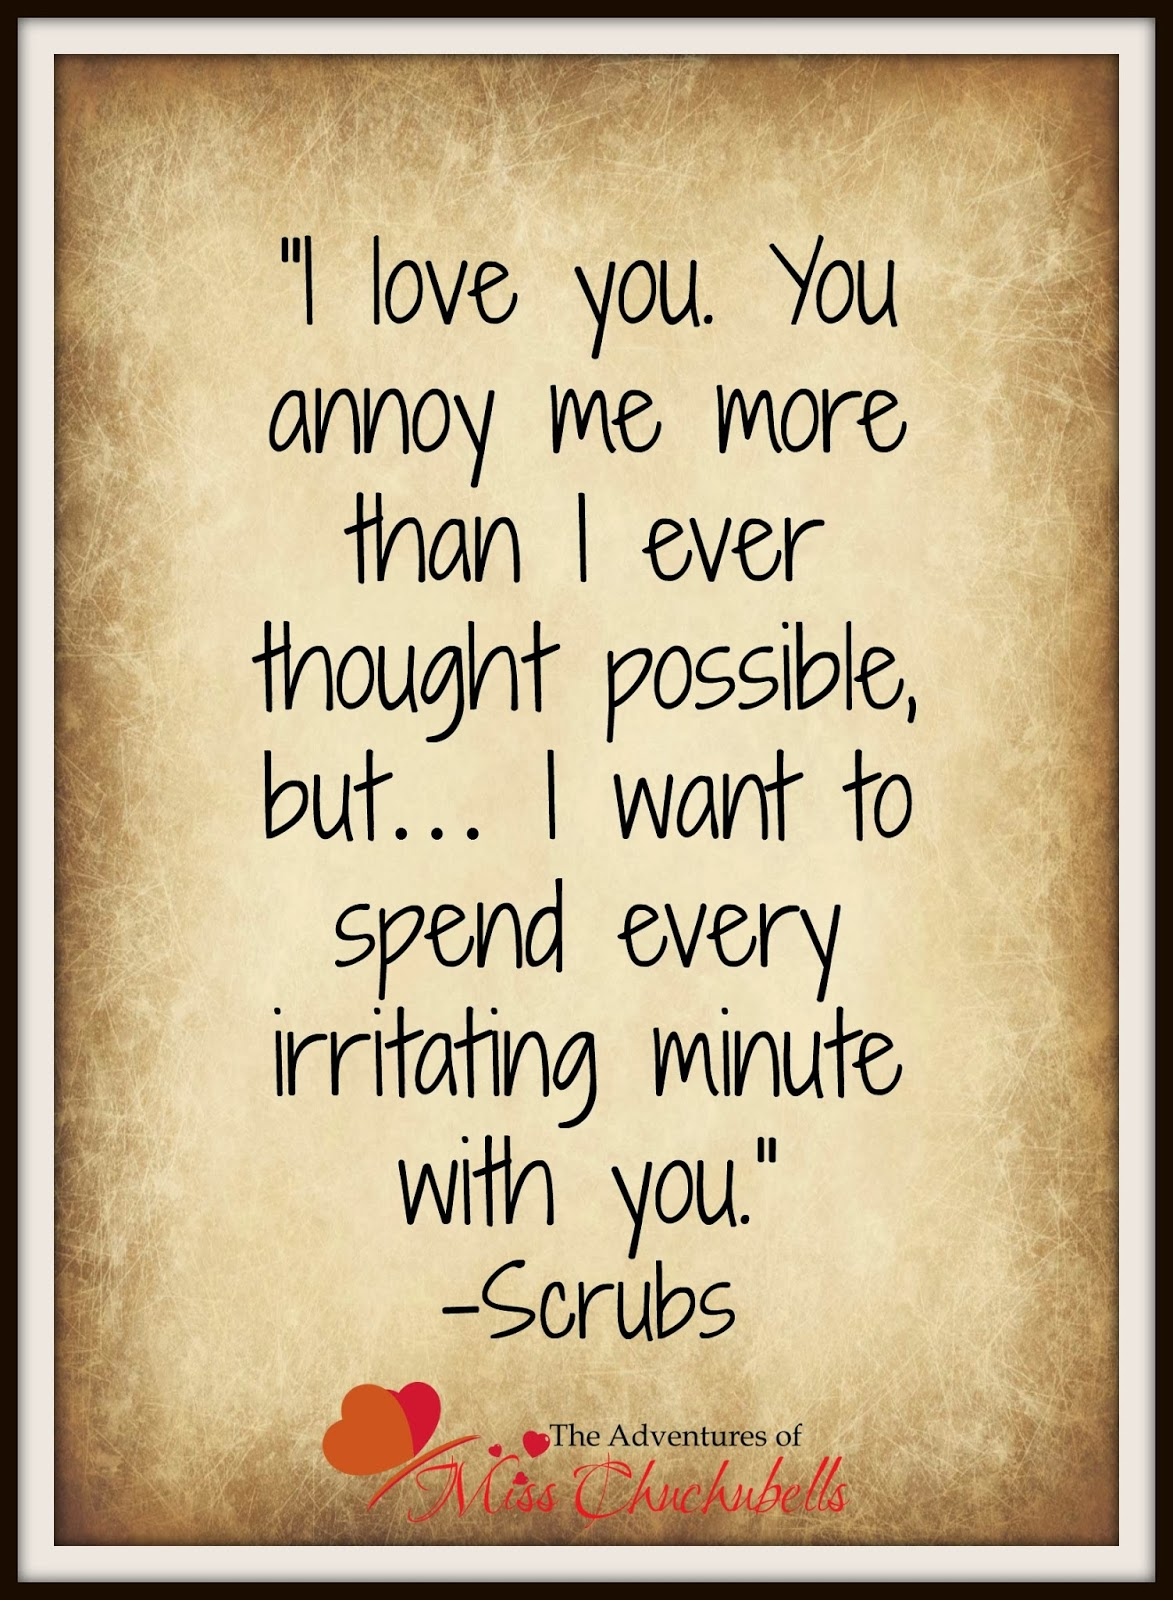 Cheesy Love Quotes Amusing Romantic And Not Too Cheesy Love Quotes  The Adventures Of Miss